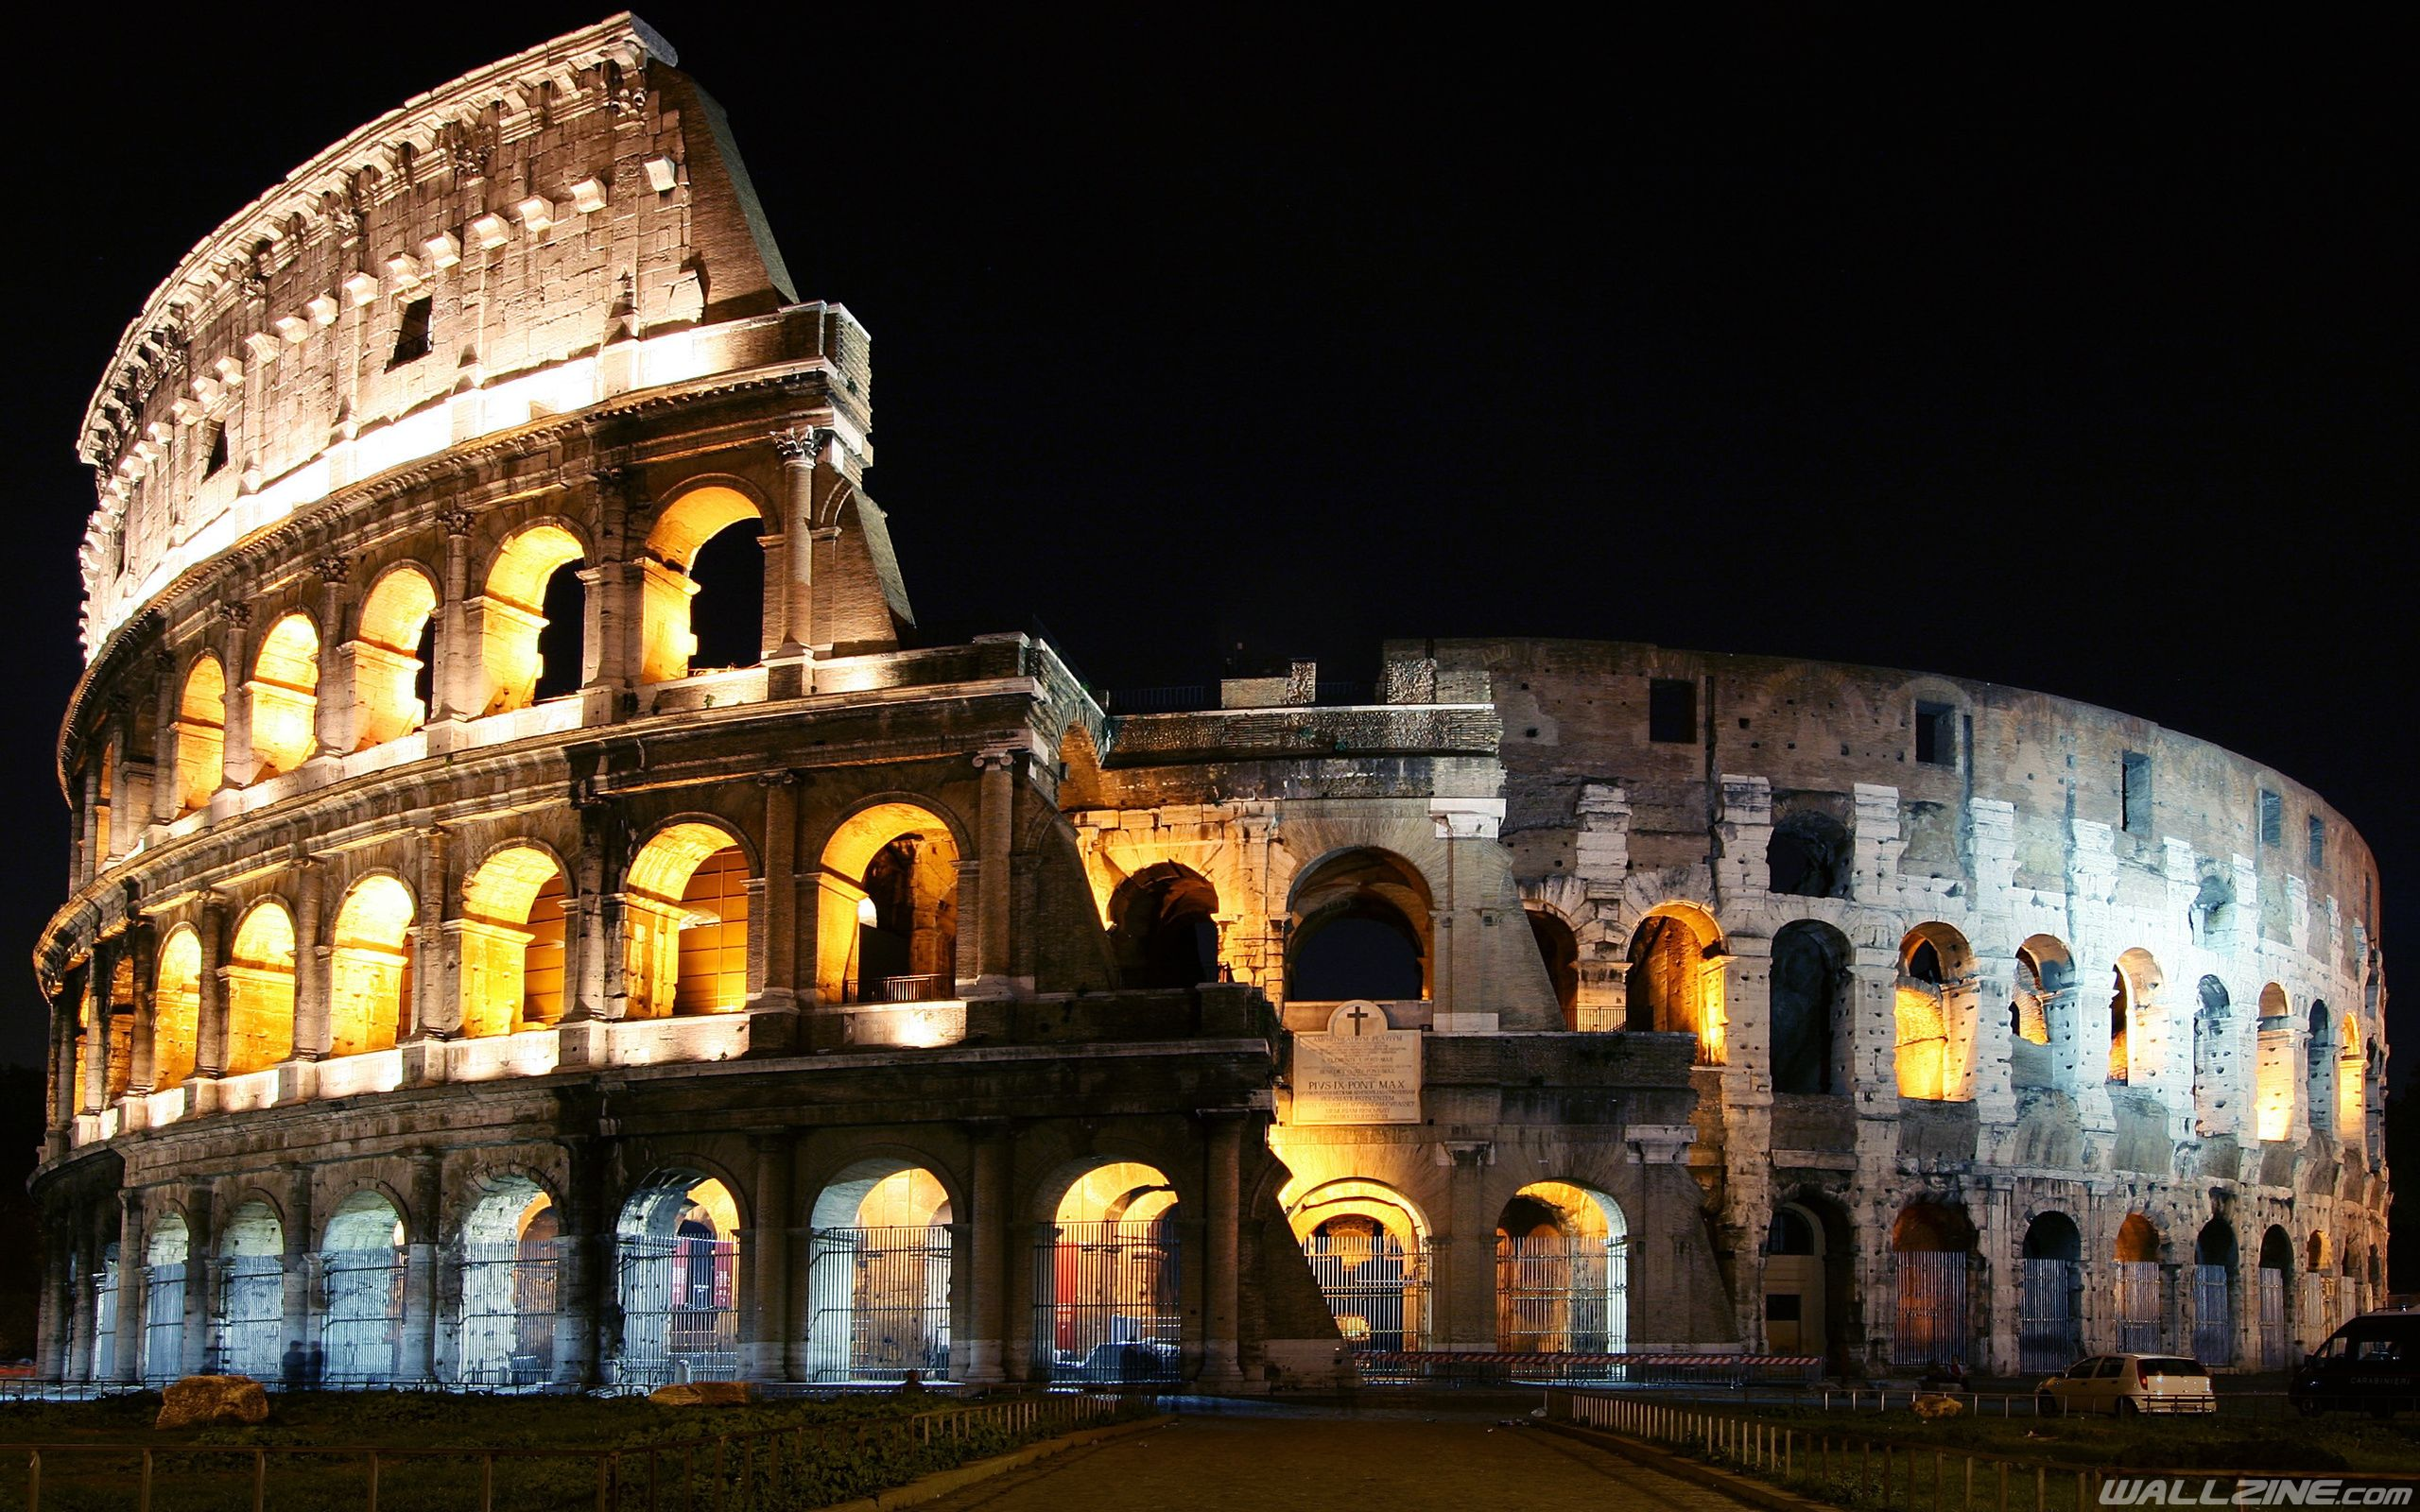 Simple Wallpaper Night Colosseum - 82b7e987dcebef15019bf0752eb12764  Perfect Image Reference.jpg